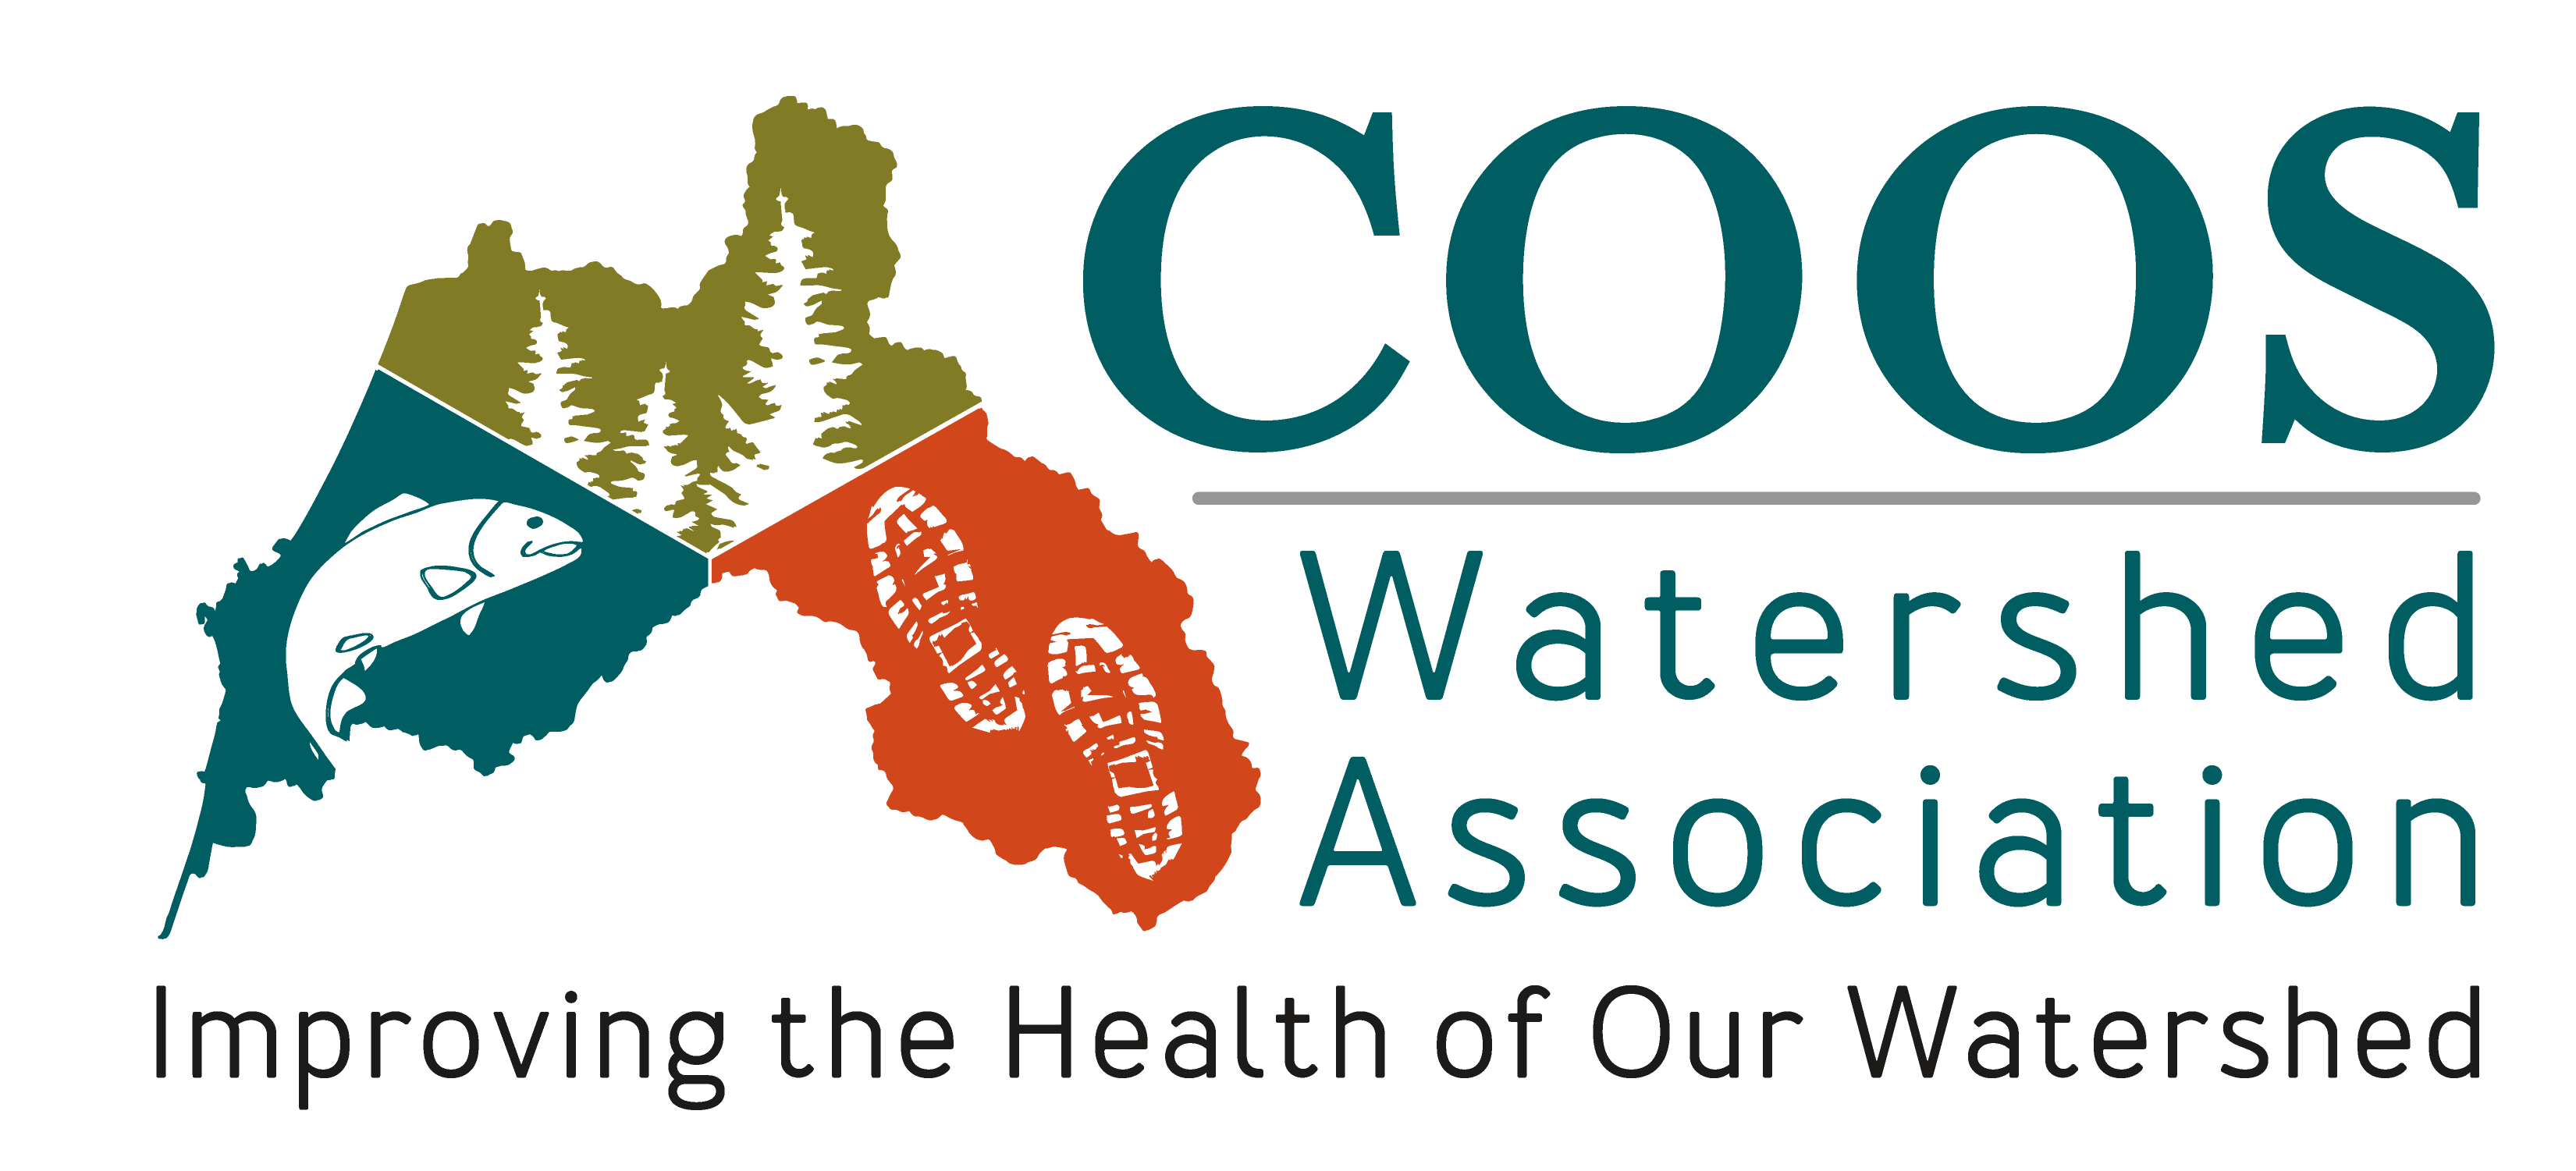 Coos Watershed Association